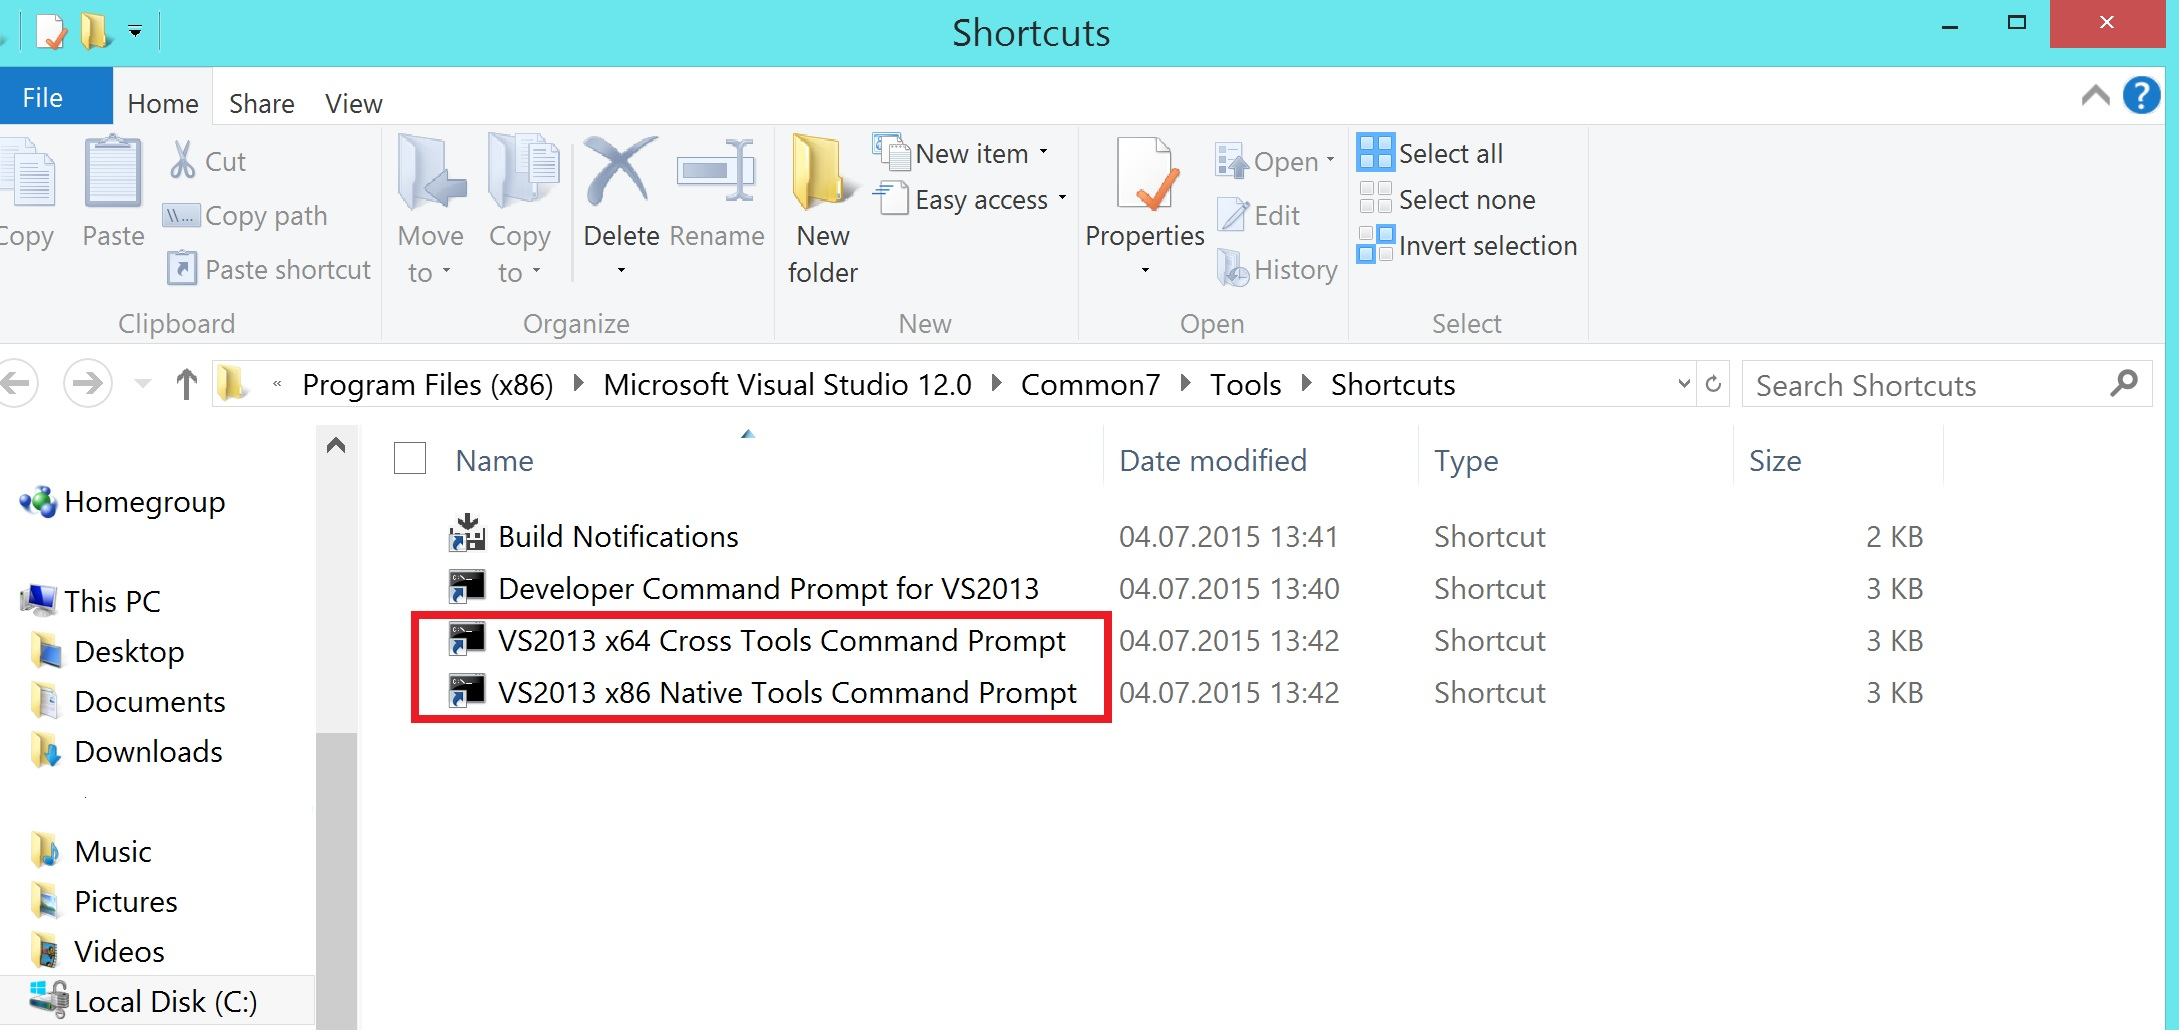 VisualStudioCMDShortcuts